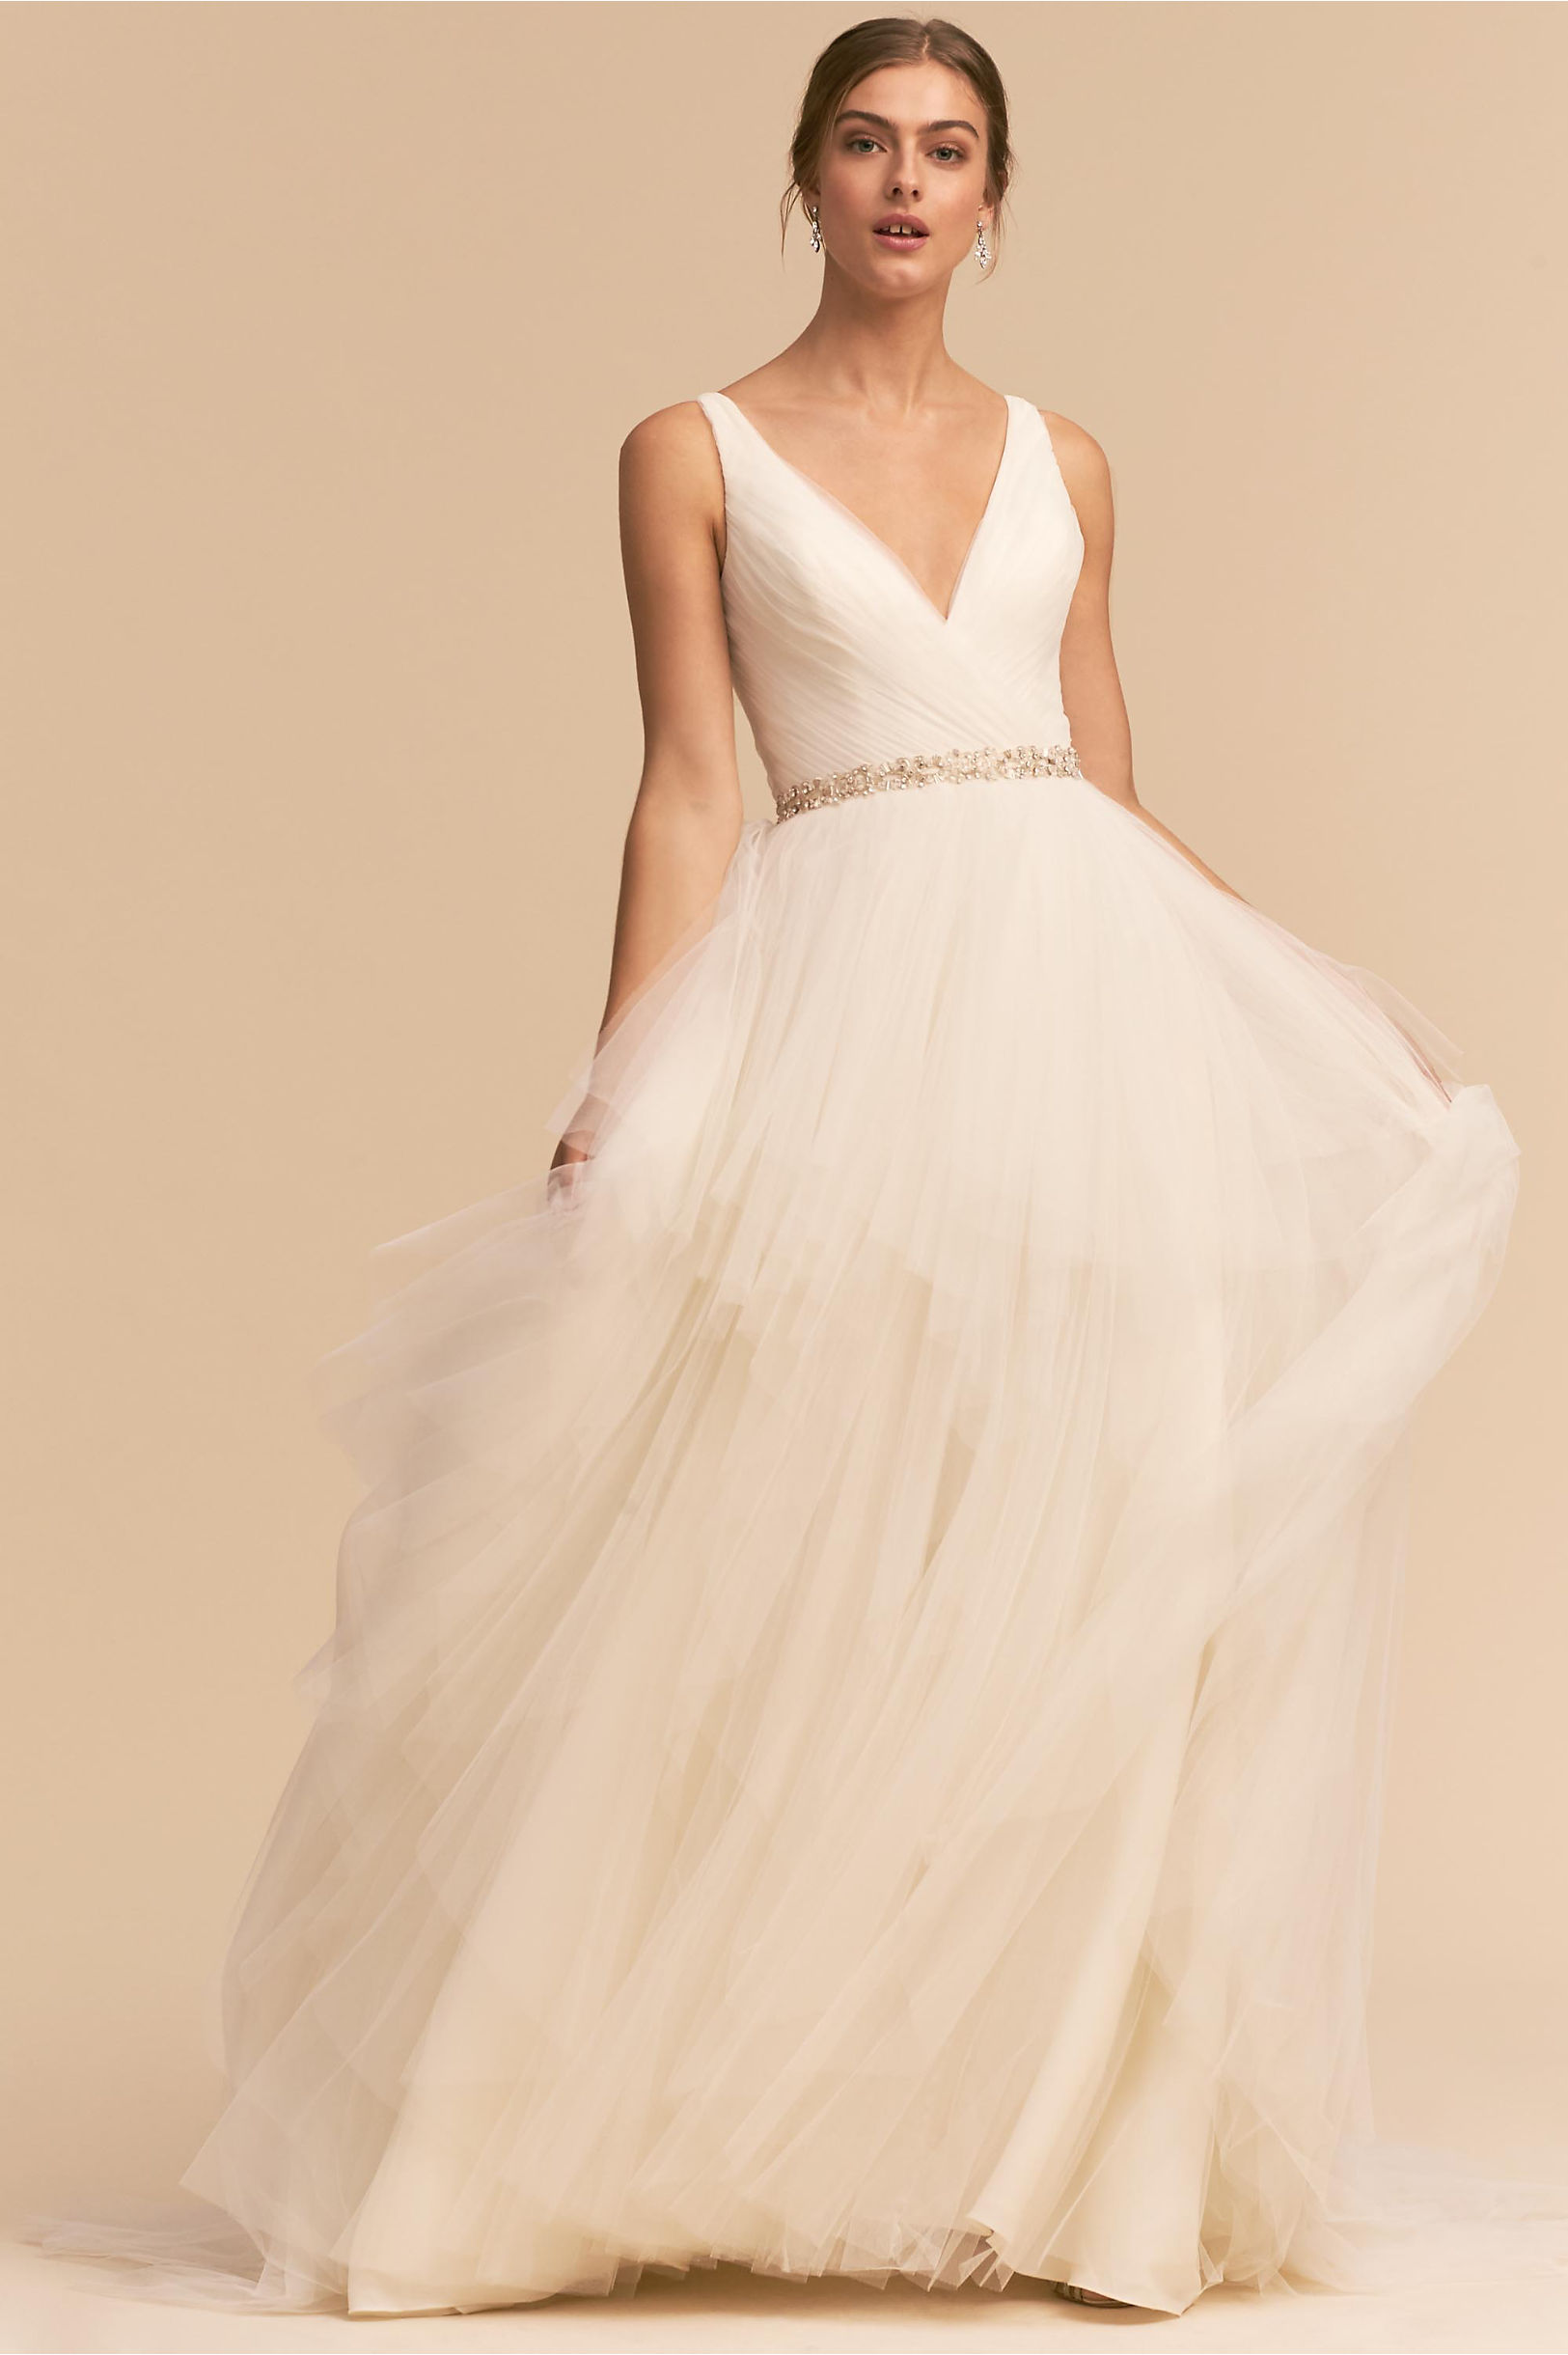 Majestic Ballgown Ivory in Bride | BHLDN